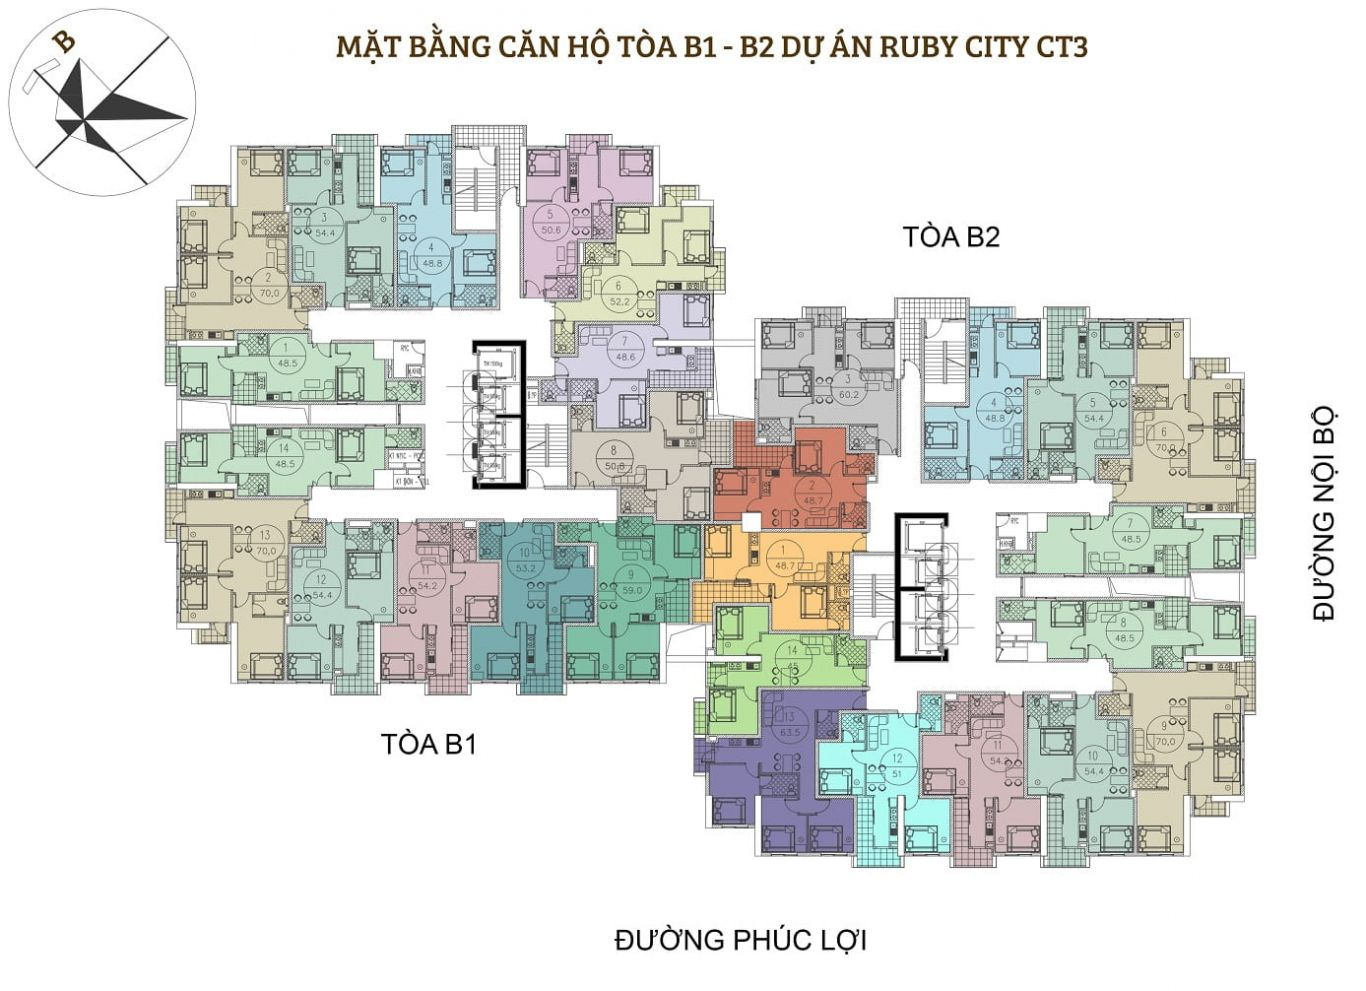 MB-toa-B1-B2-ruby-city-ct3